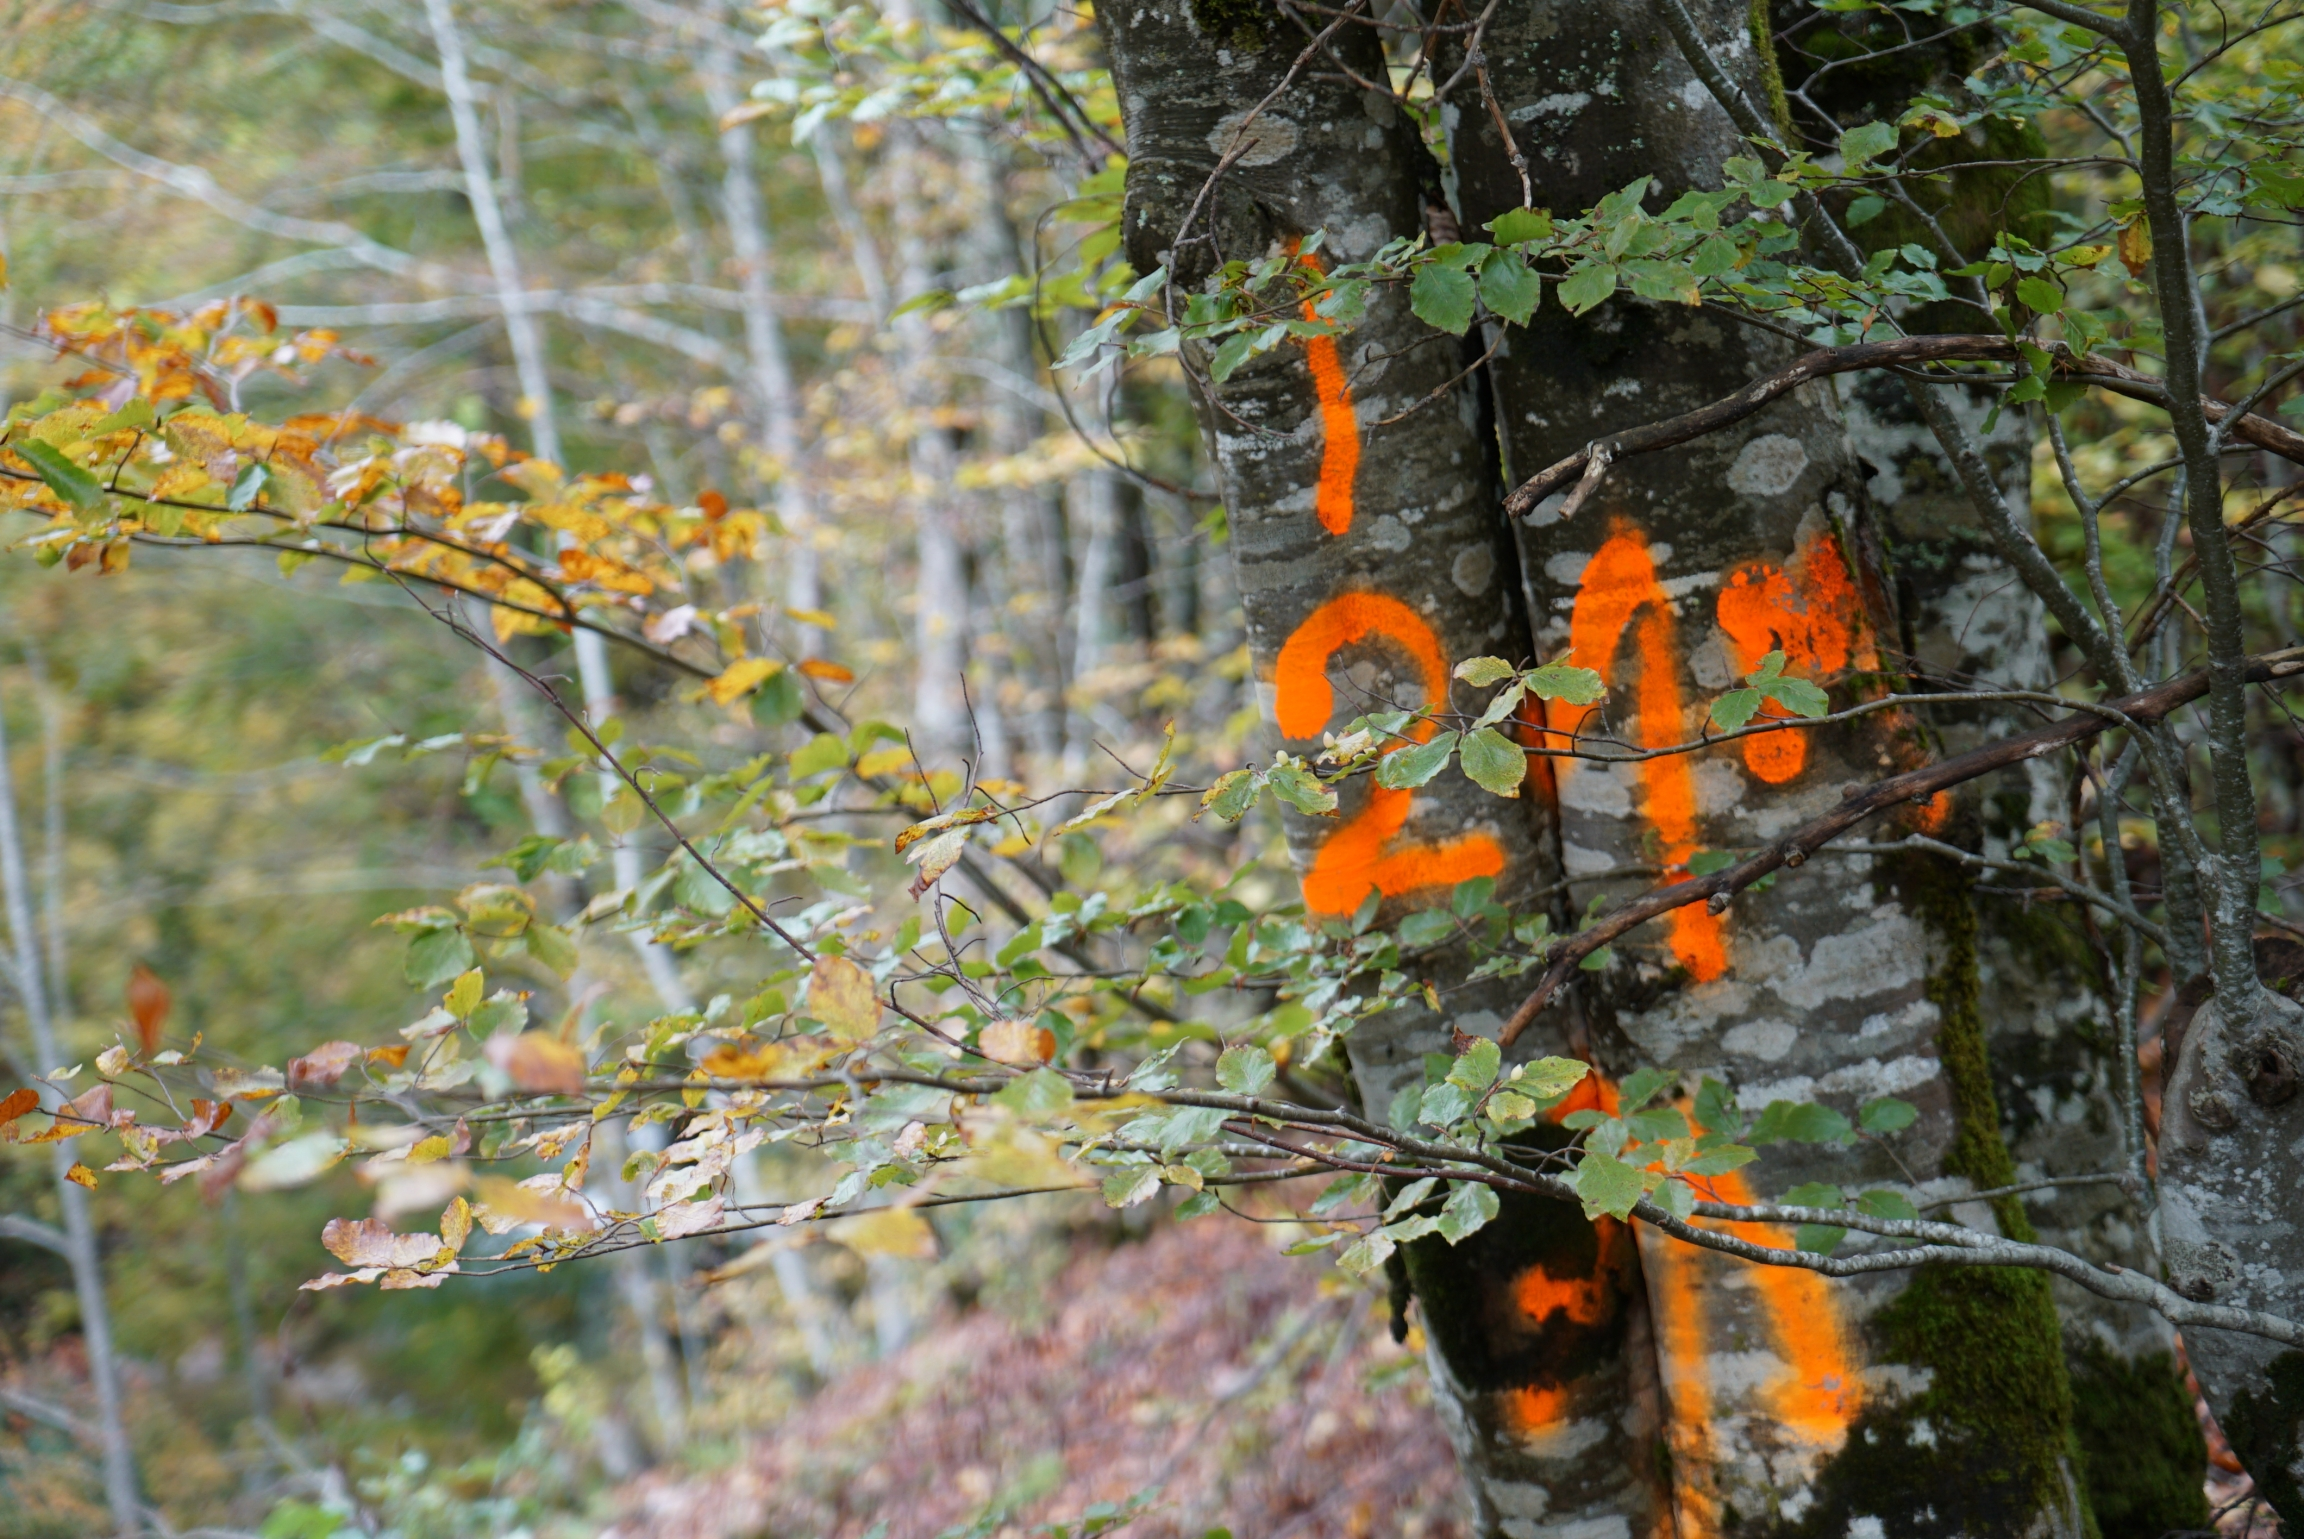 A tree is spray-painted with orange markings